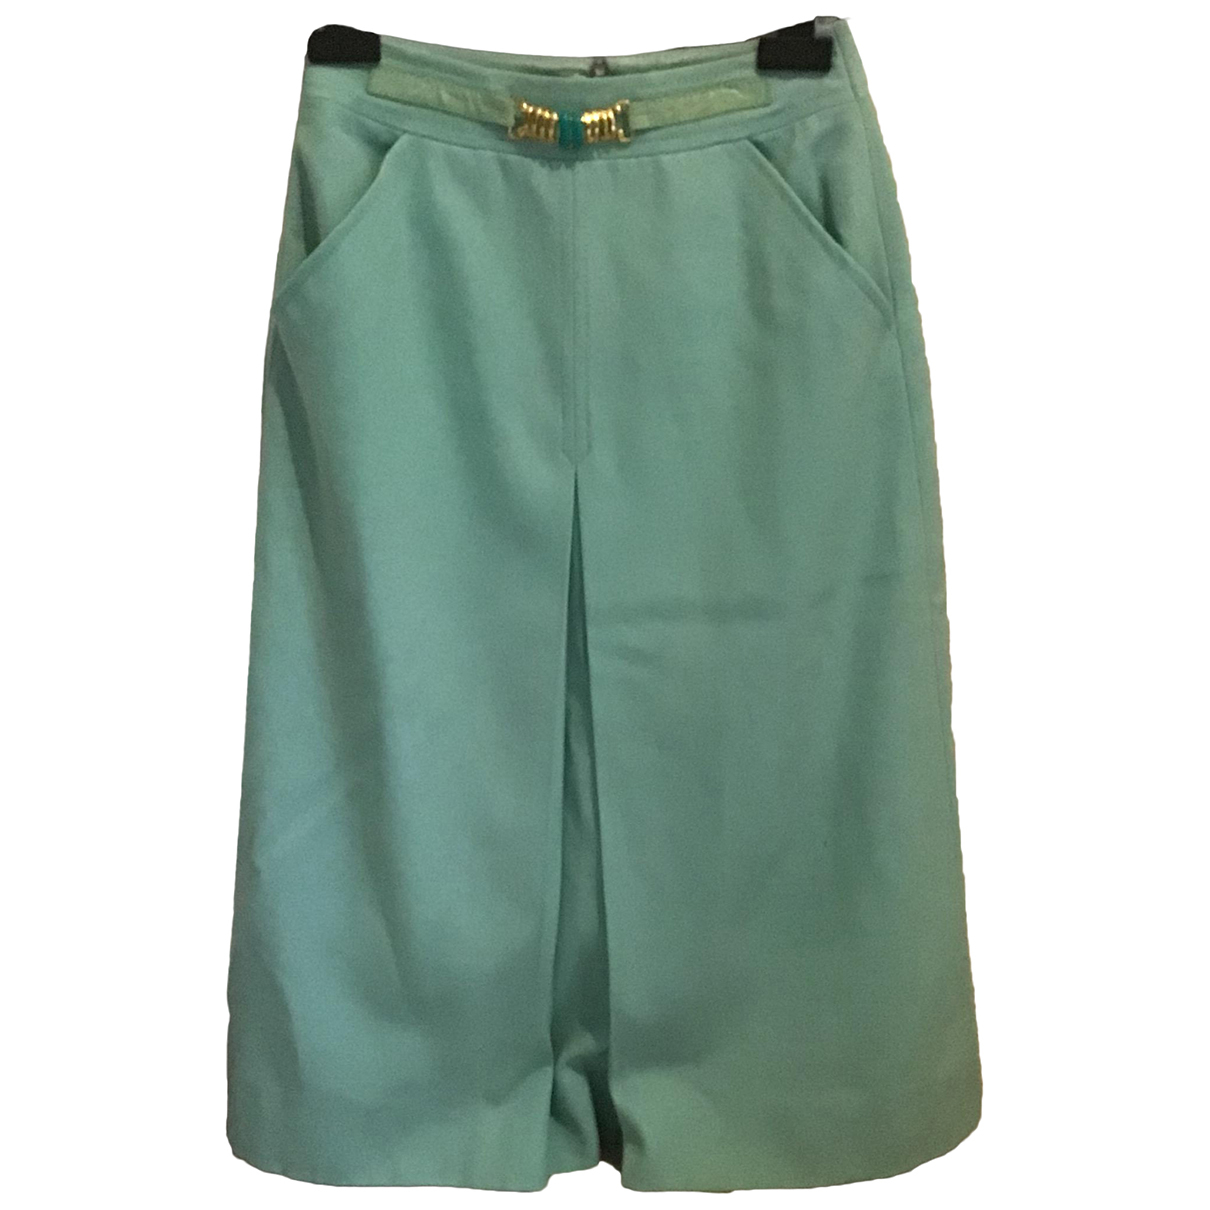 Celine \N Turquoise Wool skirt for Women 36 FR